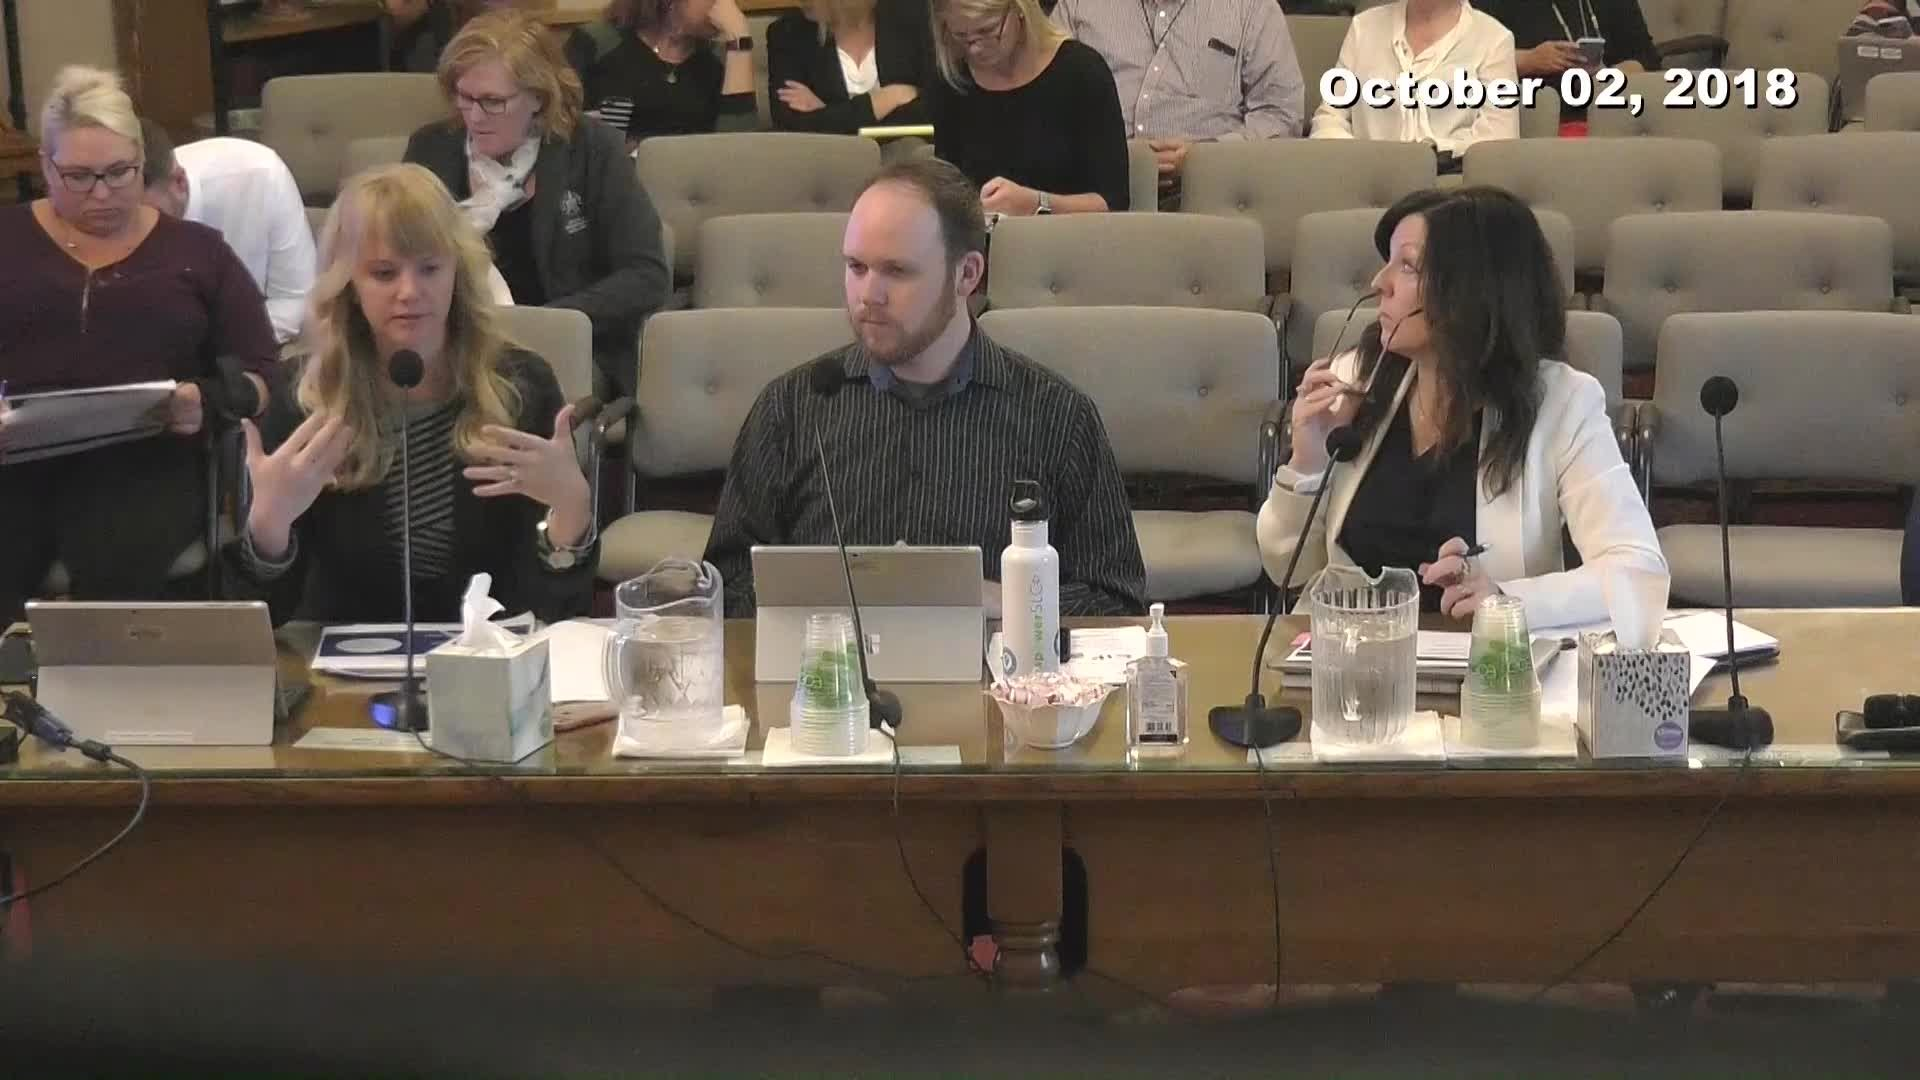 City Council Work Session - 10/02/2018